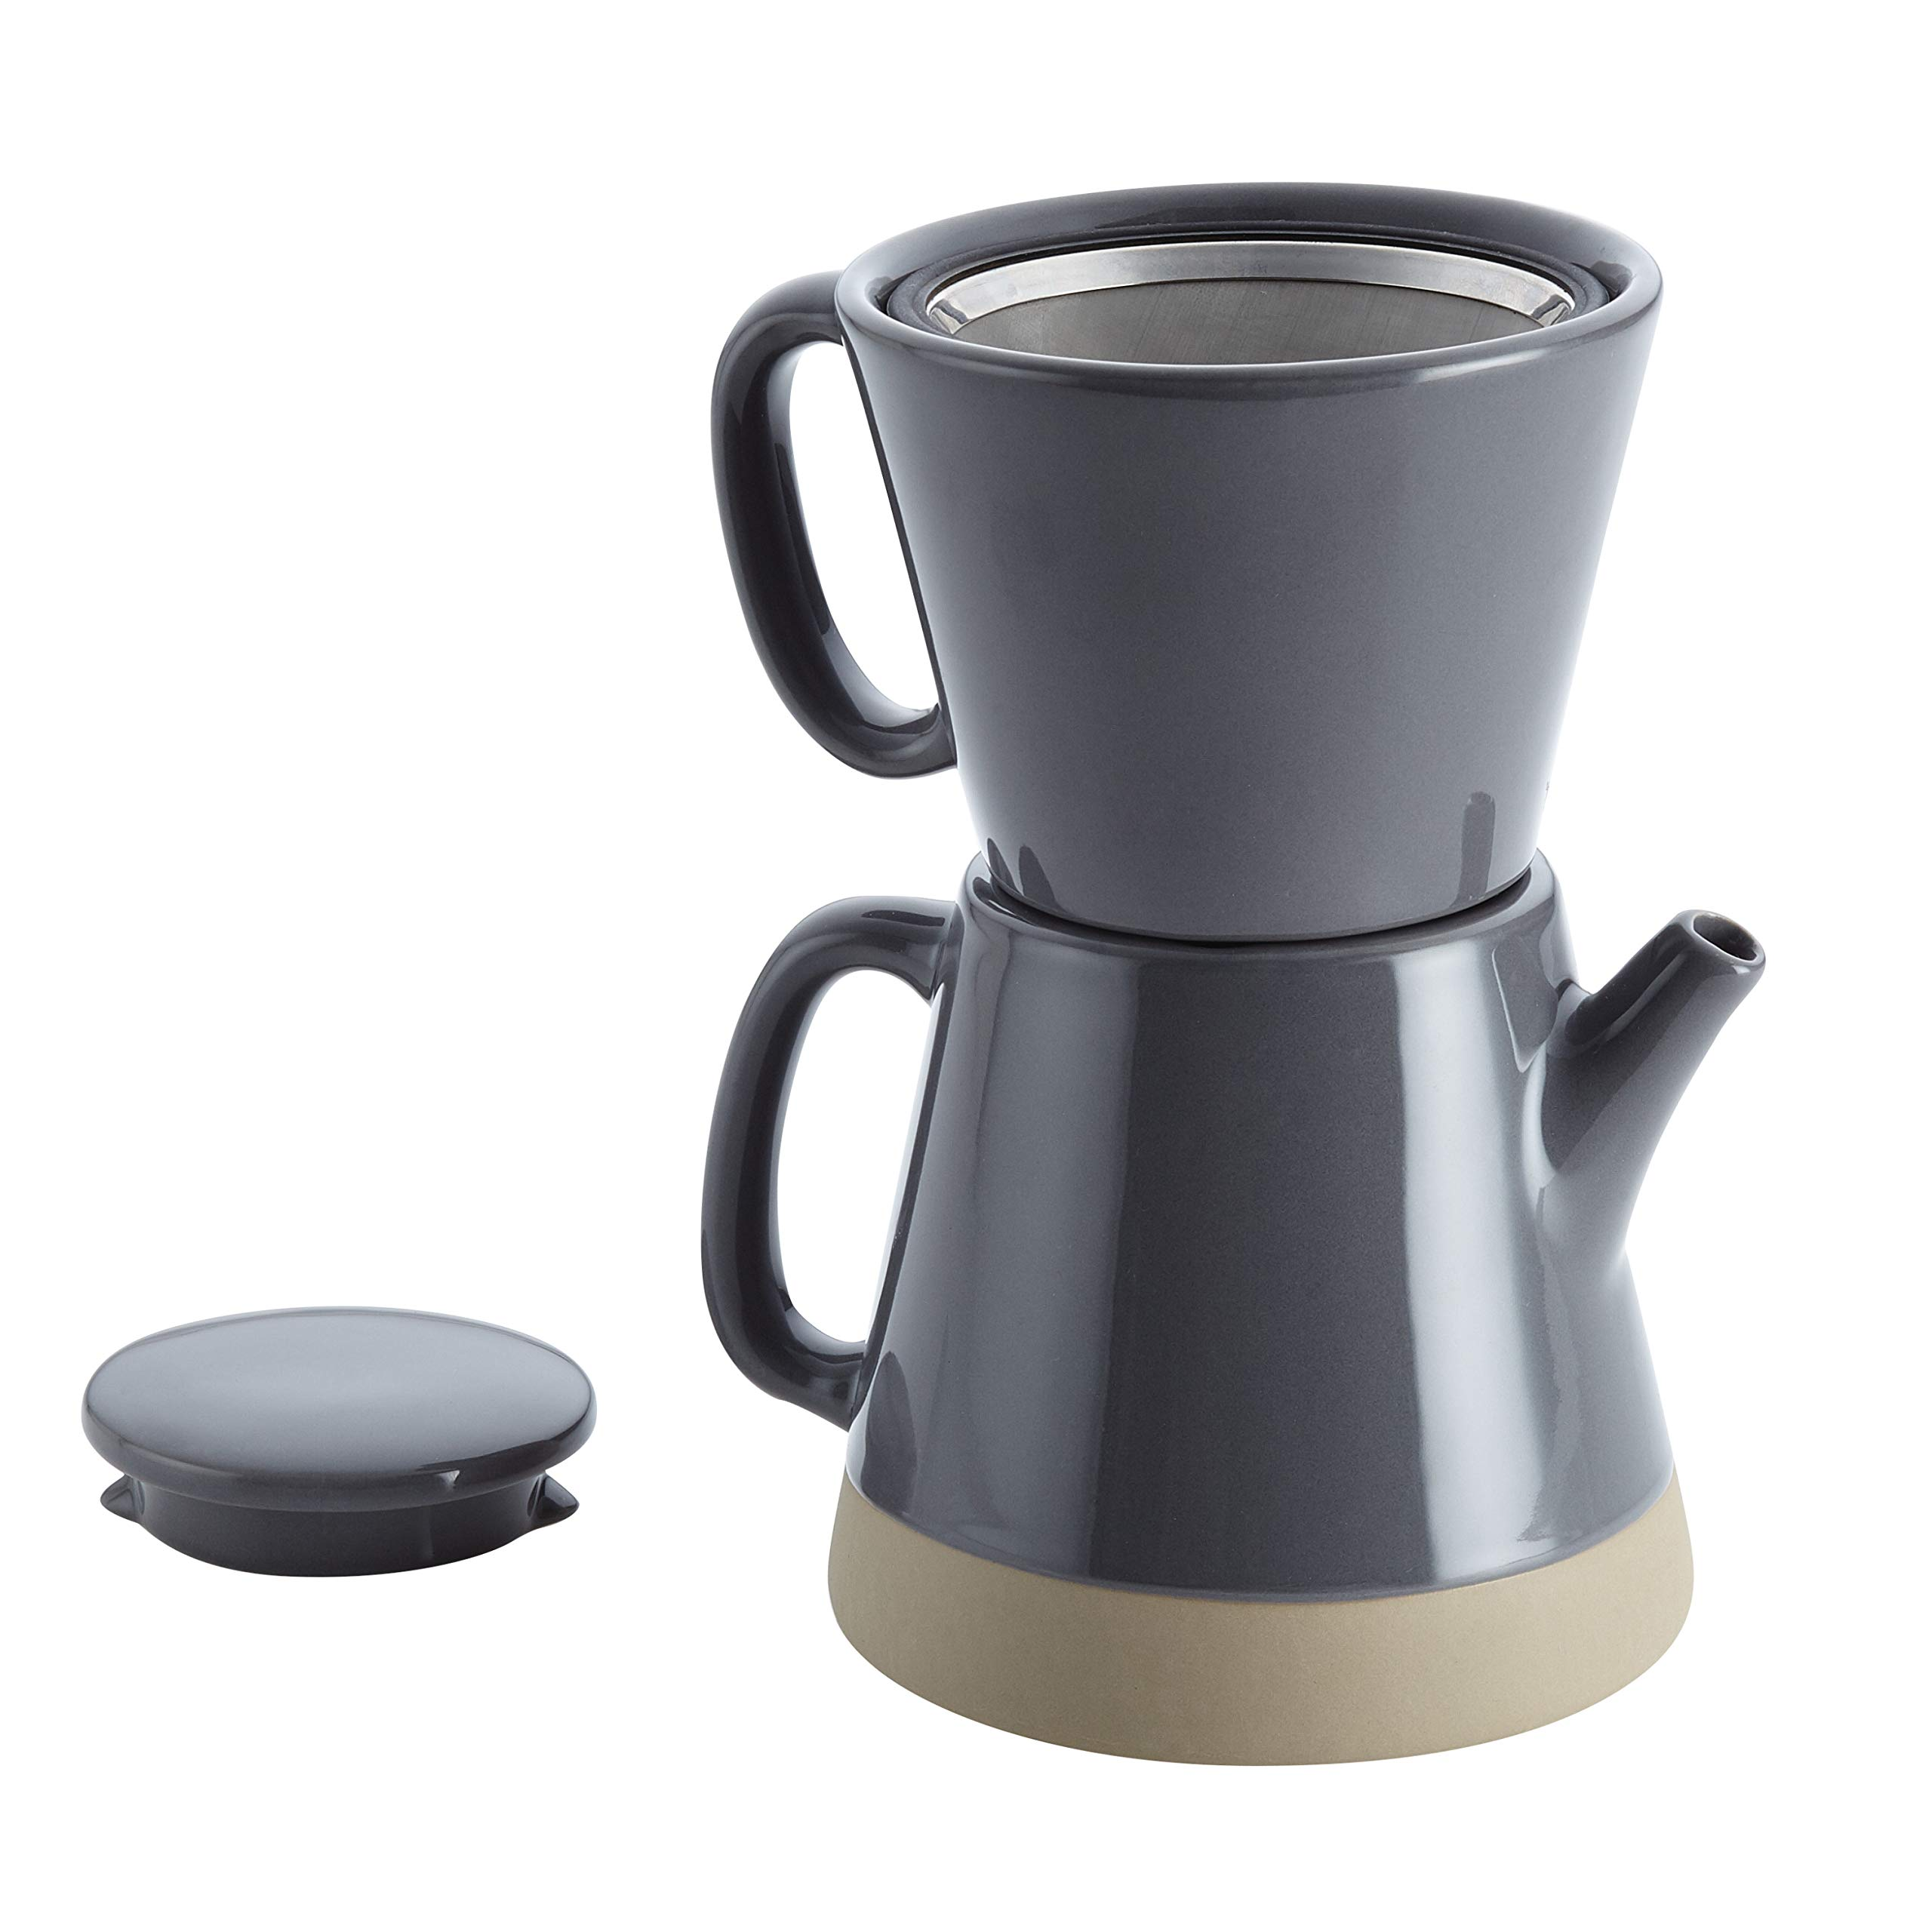 Rachael Ray Ceramic Pour-Over Coffee Set, 5-Cup, Dark Sea Salt Gray